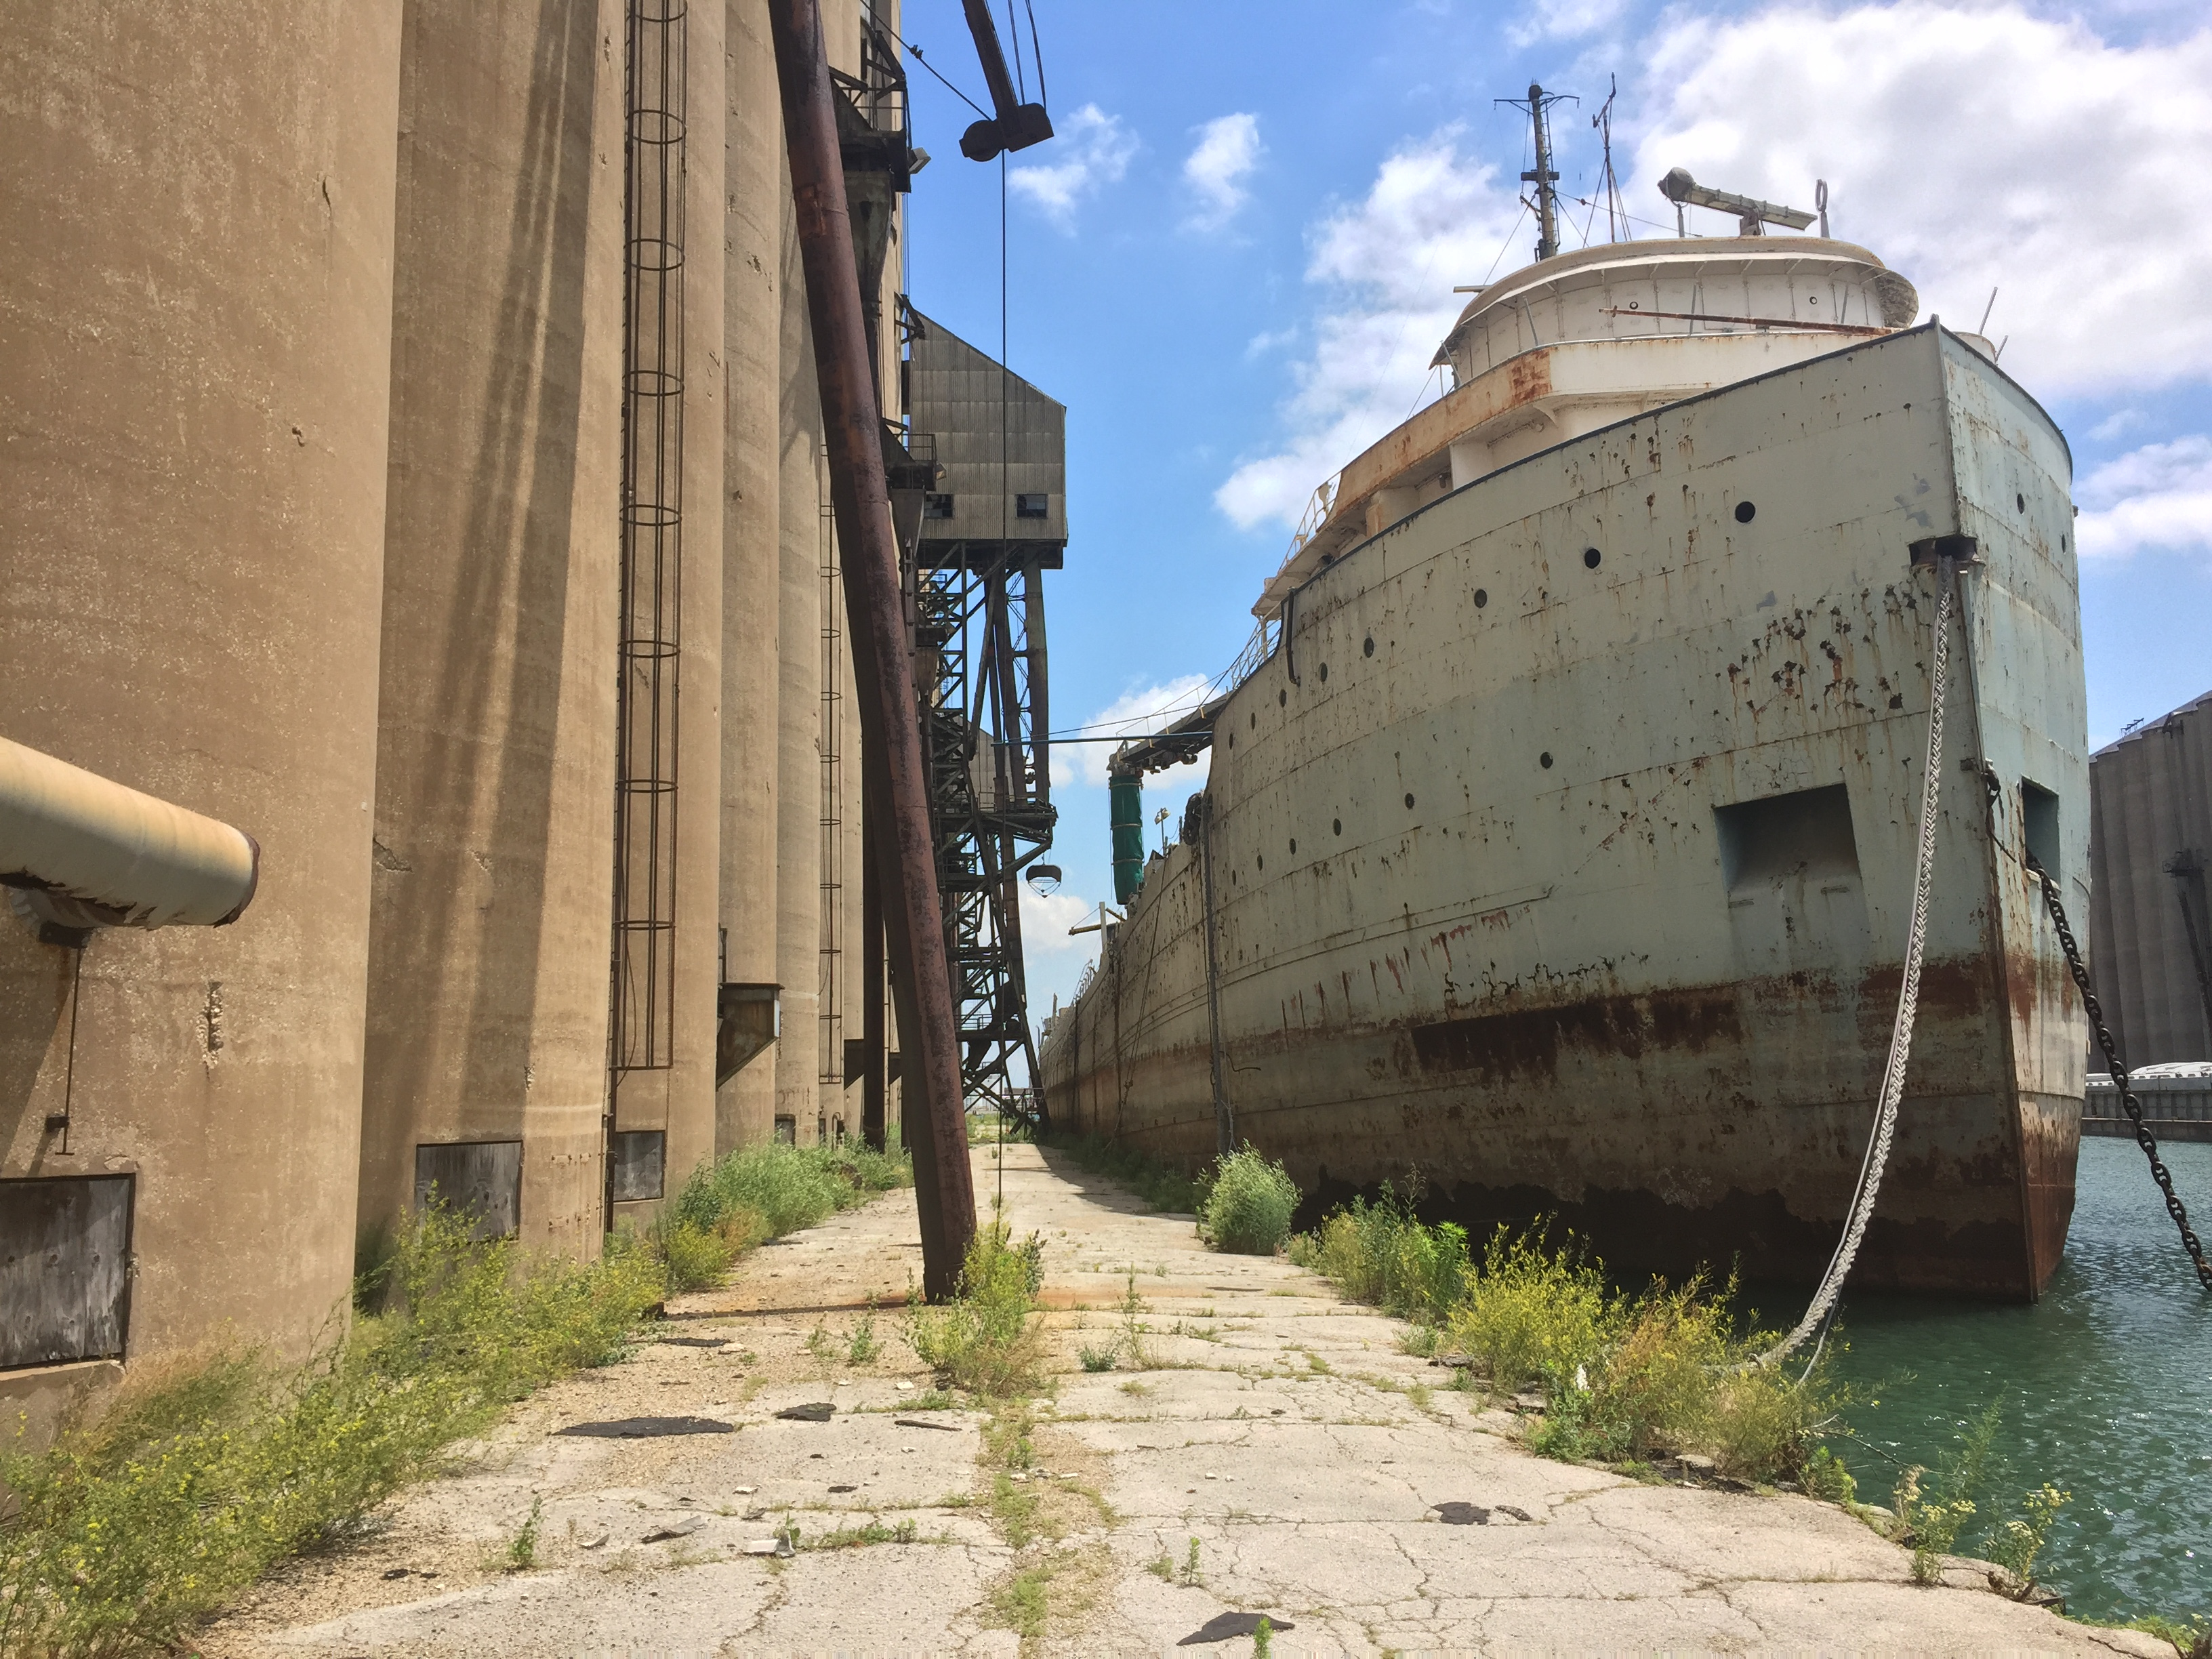 Chicago's Ghost Ship, the C.T.C. 1 — a 620-foot freighter — is scheduled to be hauled away from the Port of Chicago, where it has sat alongside grain silos since 1982.